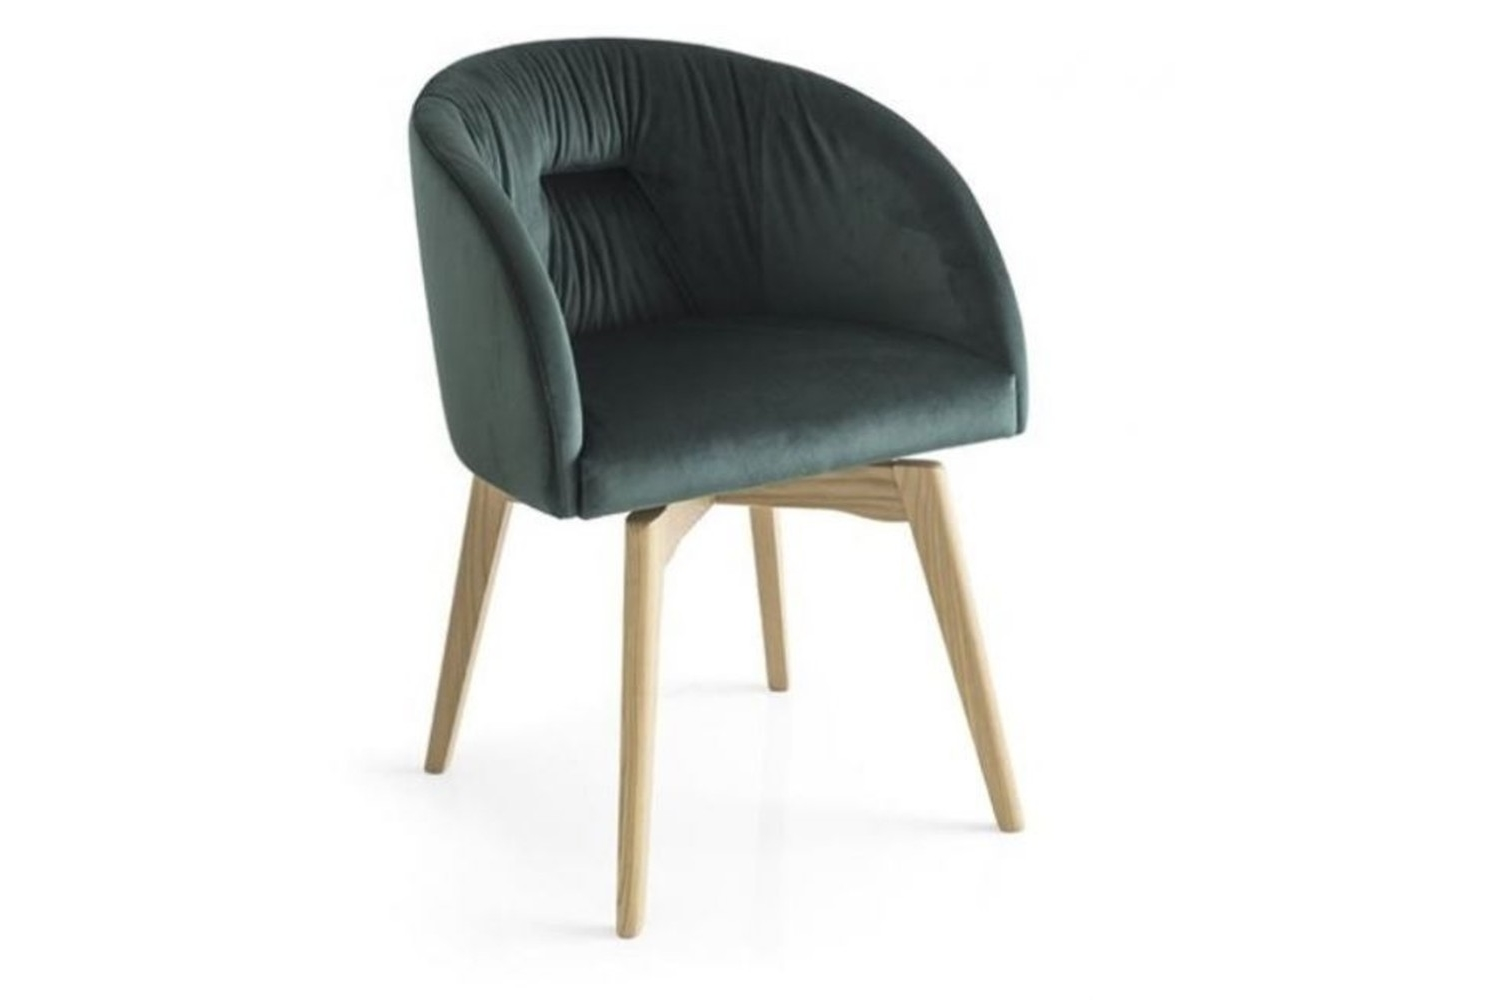 connubia by calligaris sedia rosie soft cb 1922 connubia-by-calligaris-sedia-rosie-soft-cb-1922.jpg Rosie soft wood dining chair